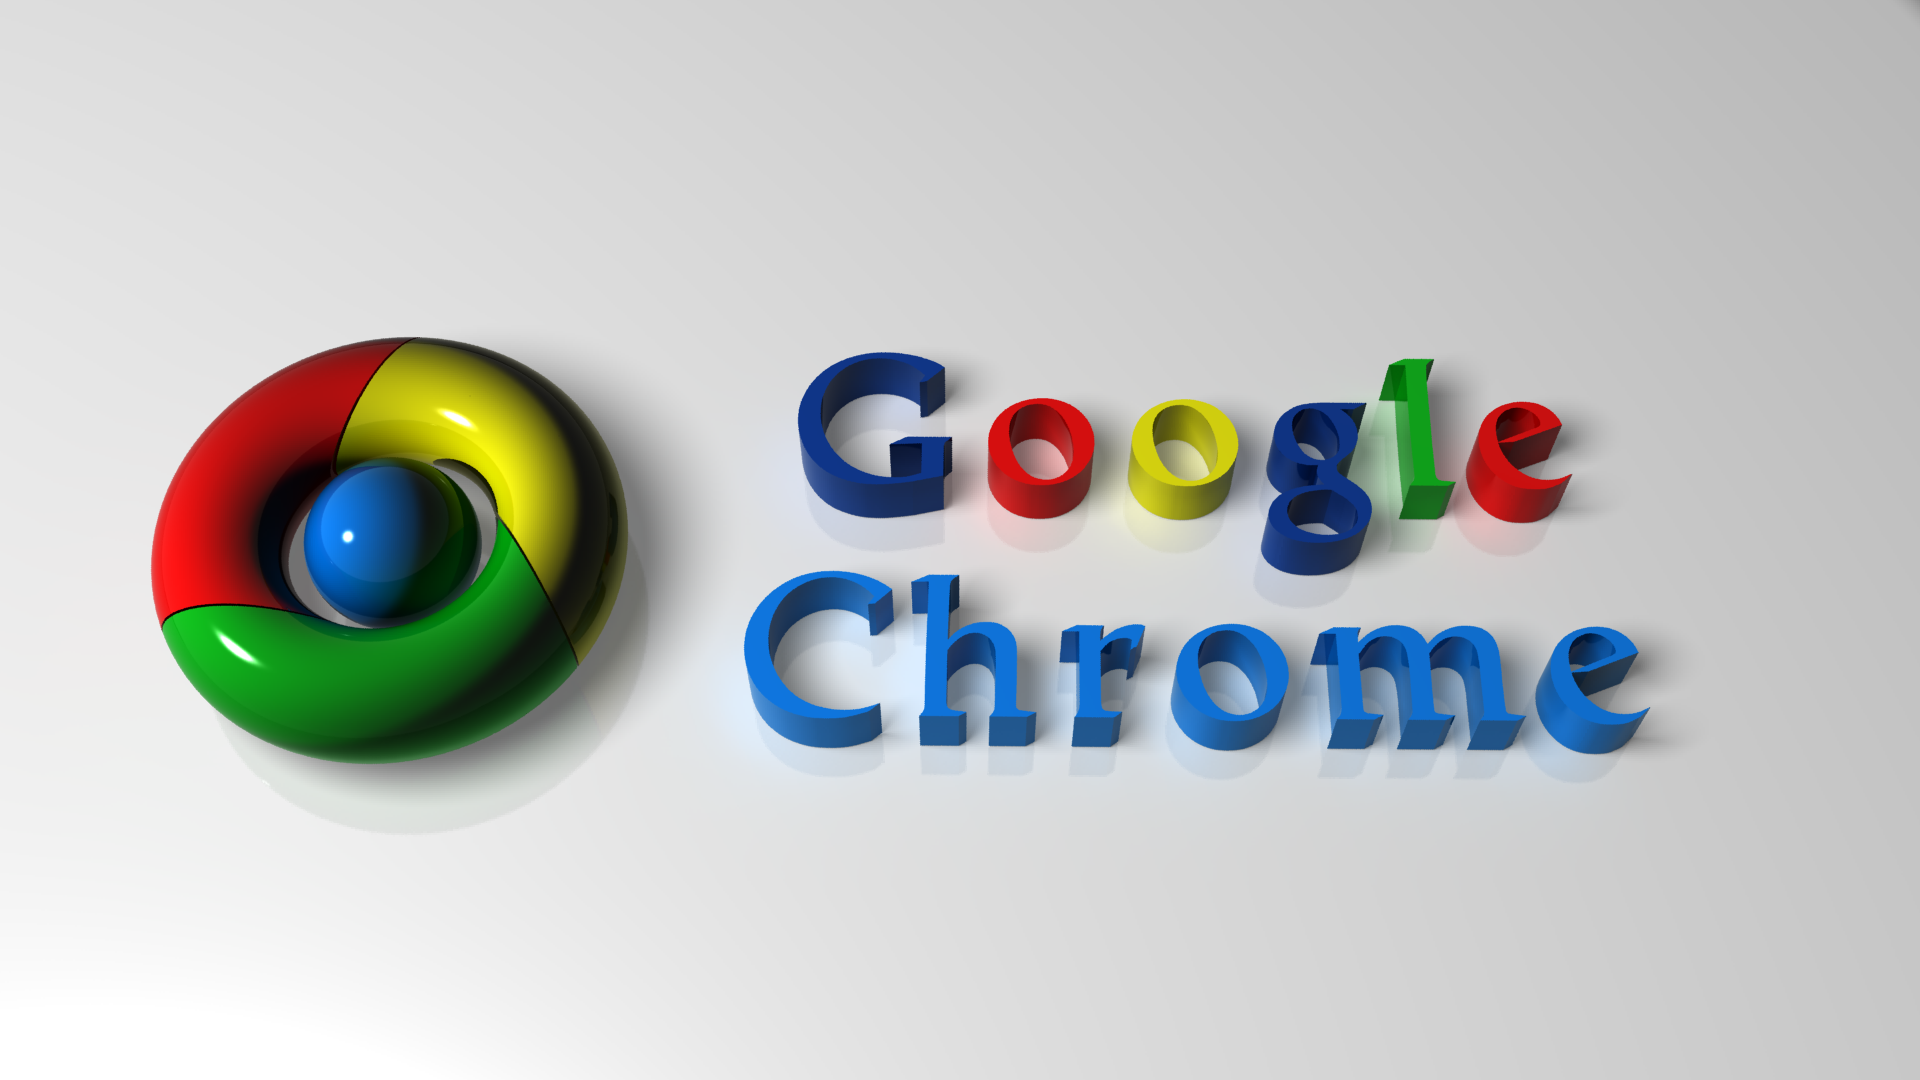 Free Chrome 1920x1080 px– HD Quality Images